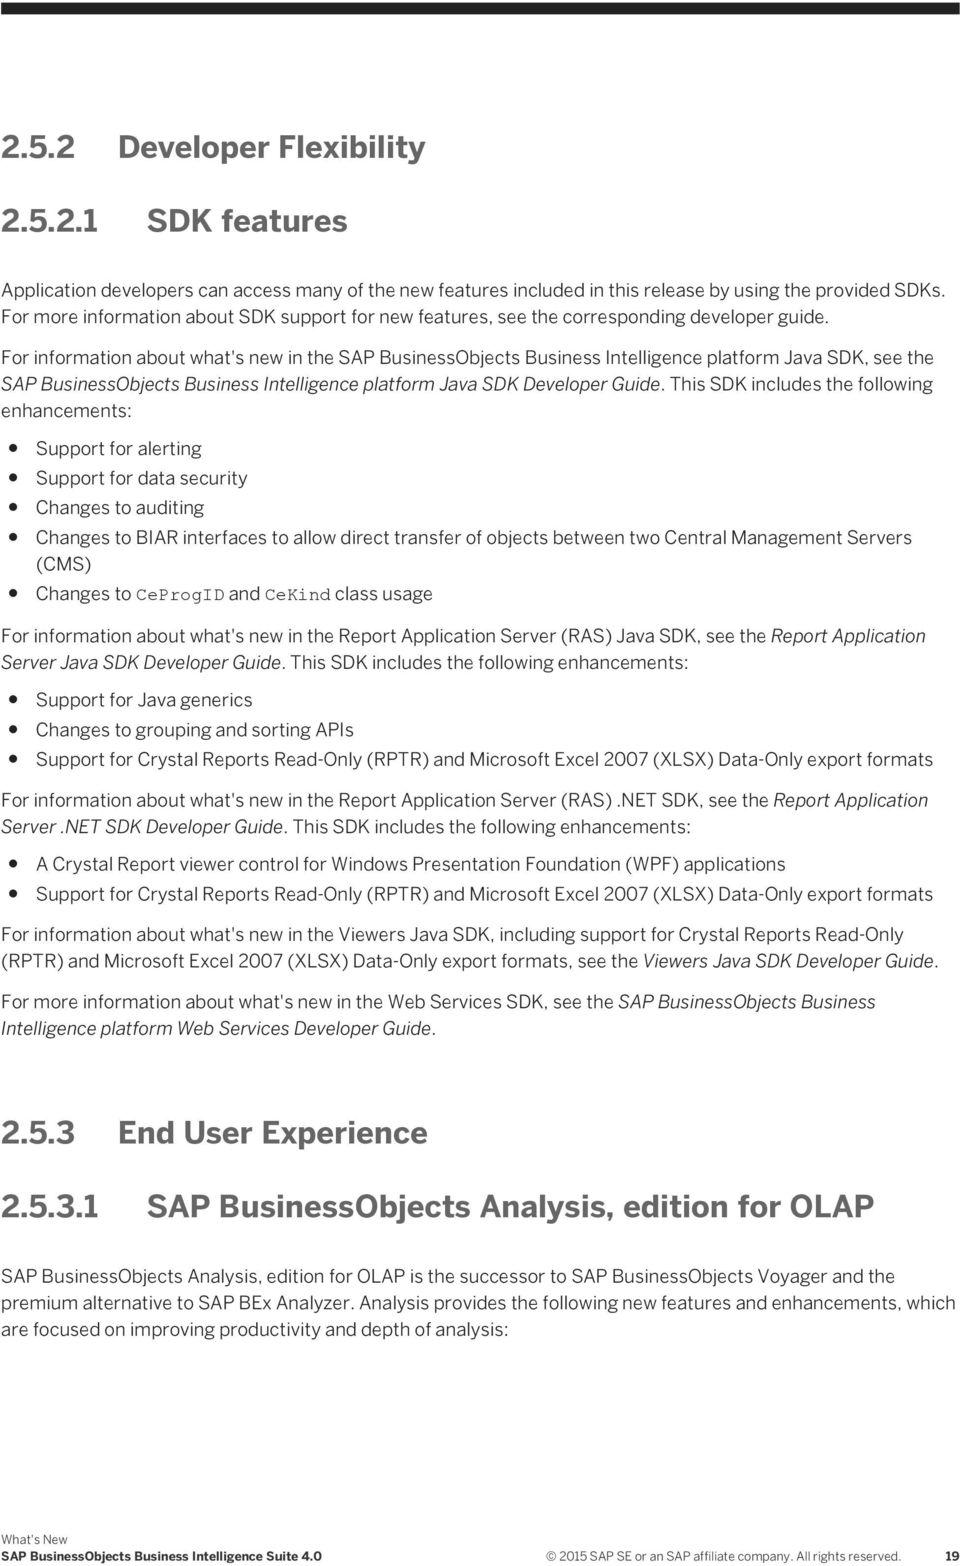 For information about what's new in the SAP BusinessObjects Business Intelligence platform Java SDK, see the SAP BusinessObjects Business Intelligence platform Java SDK Developer Guide.